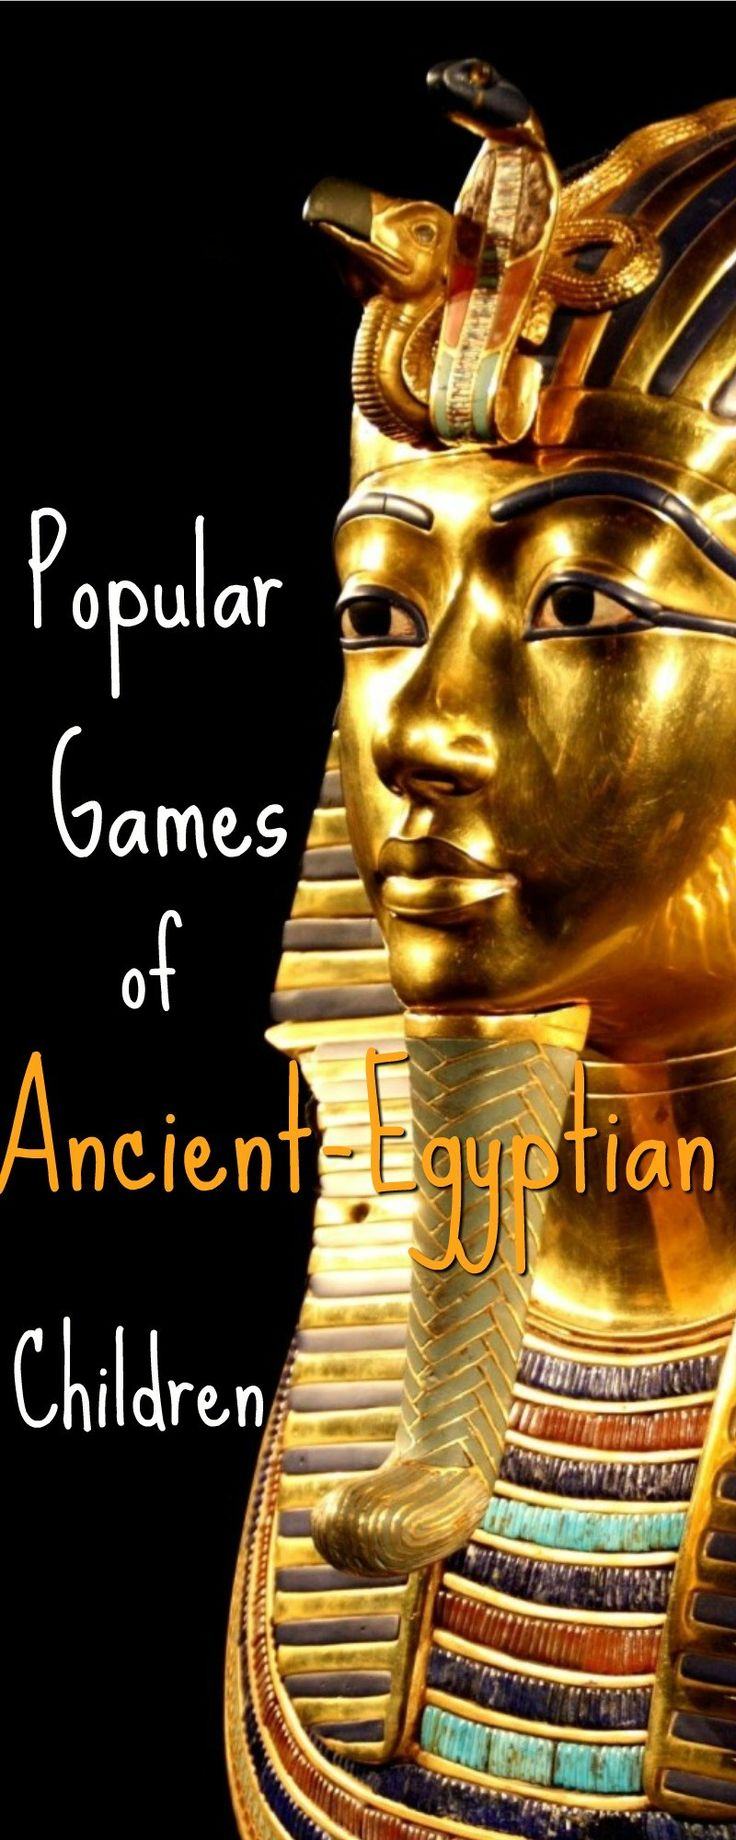 Popular games played by Ancient-Egyptian children